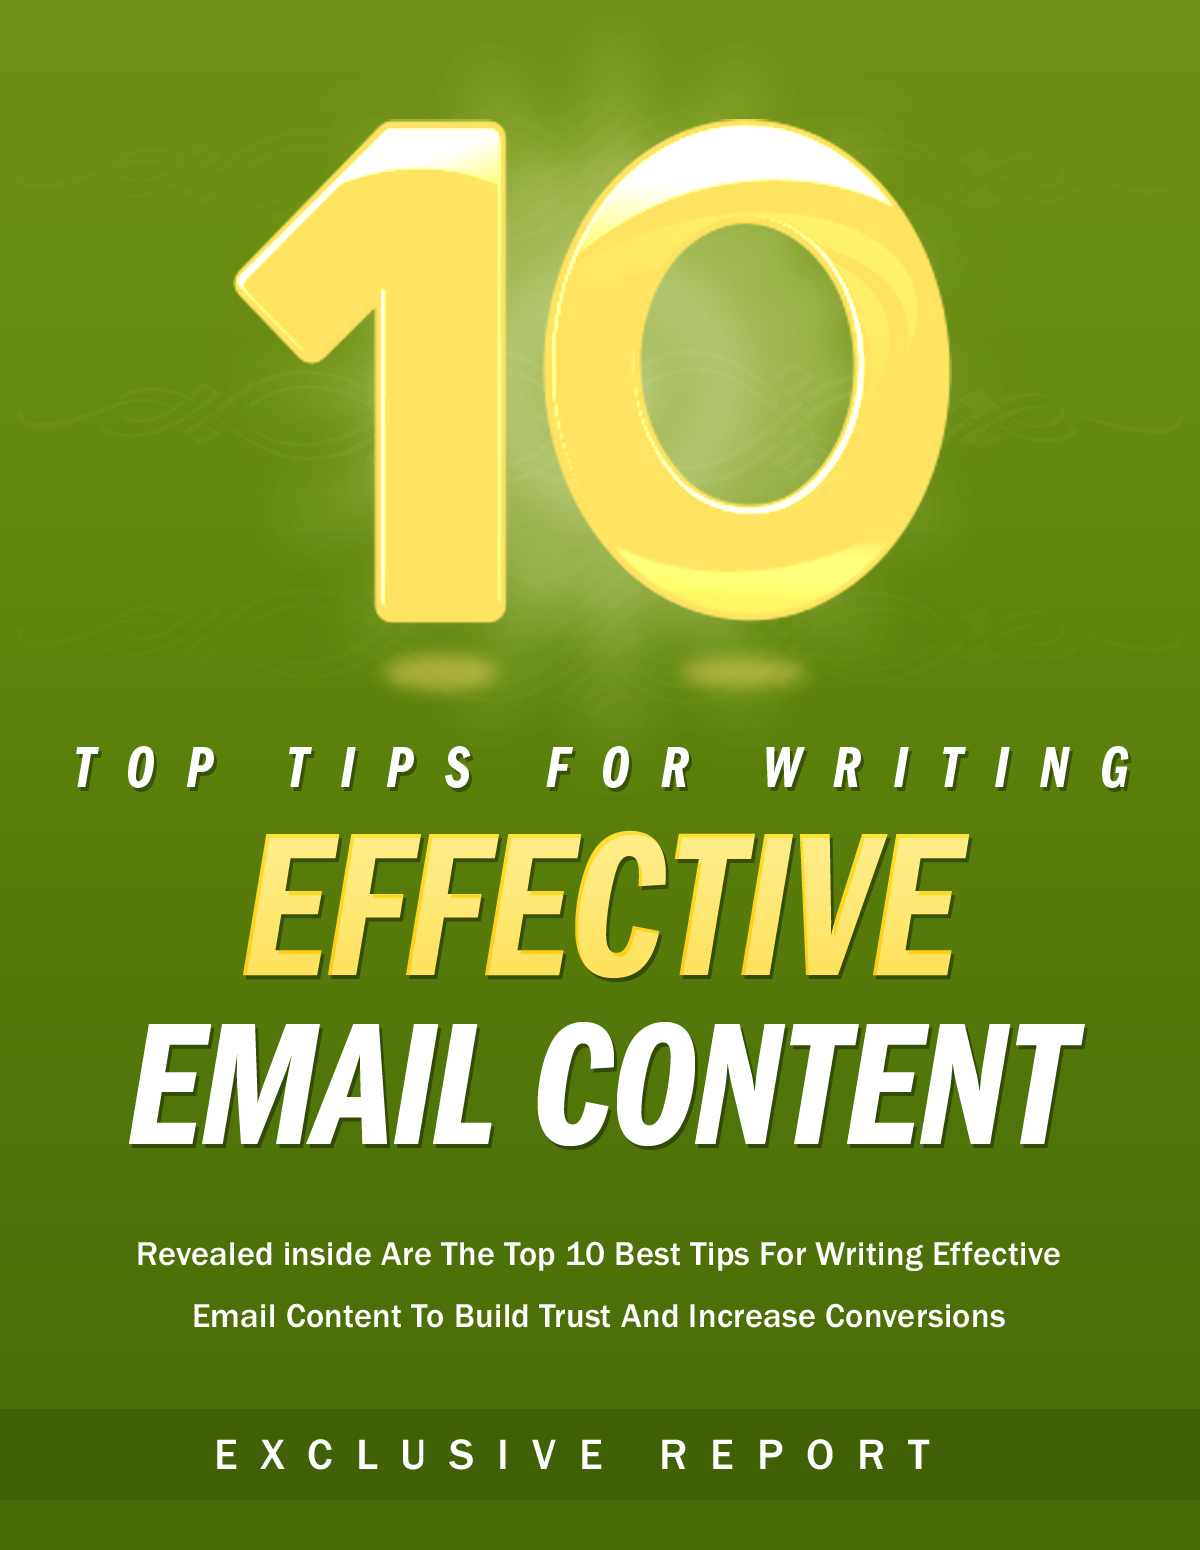 10 Tips For Writing Effective Email Content Ebook's Book Image